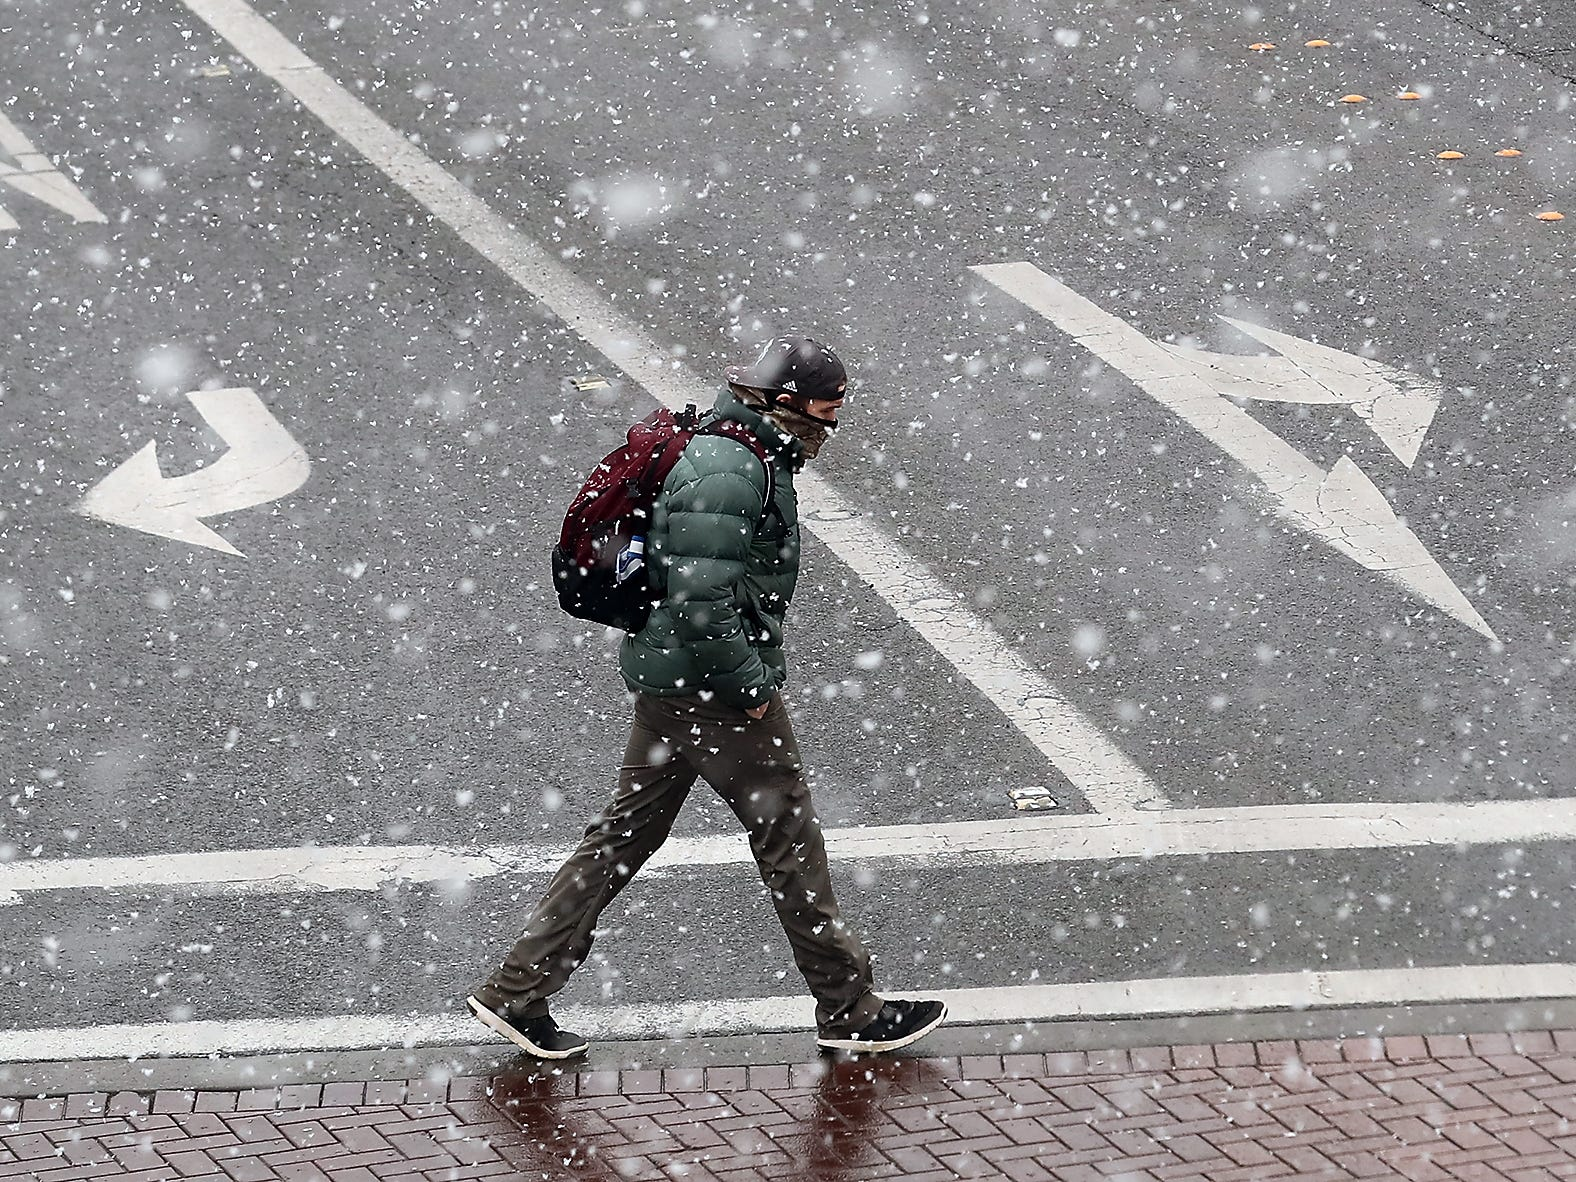 A pedestrian crosses Burwell at Pacific as snow falls in downtown Bremerton on Friday, February 8, 2019.